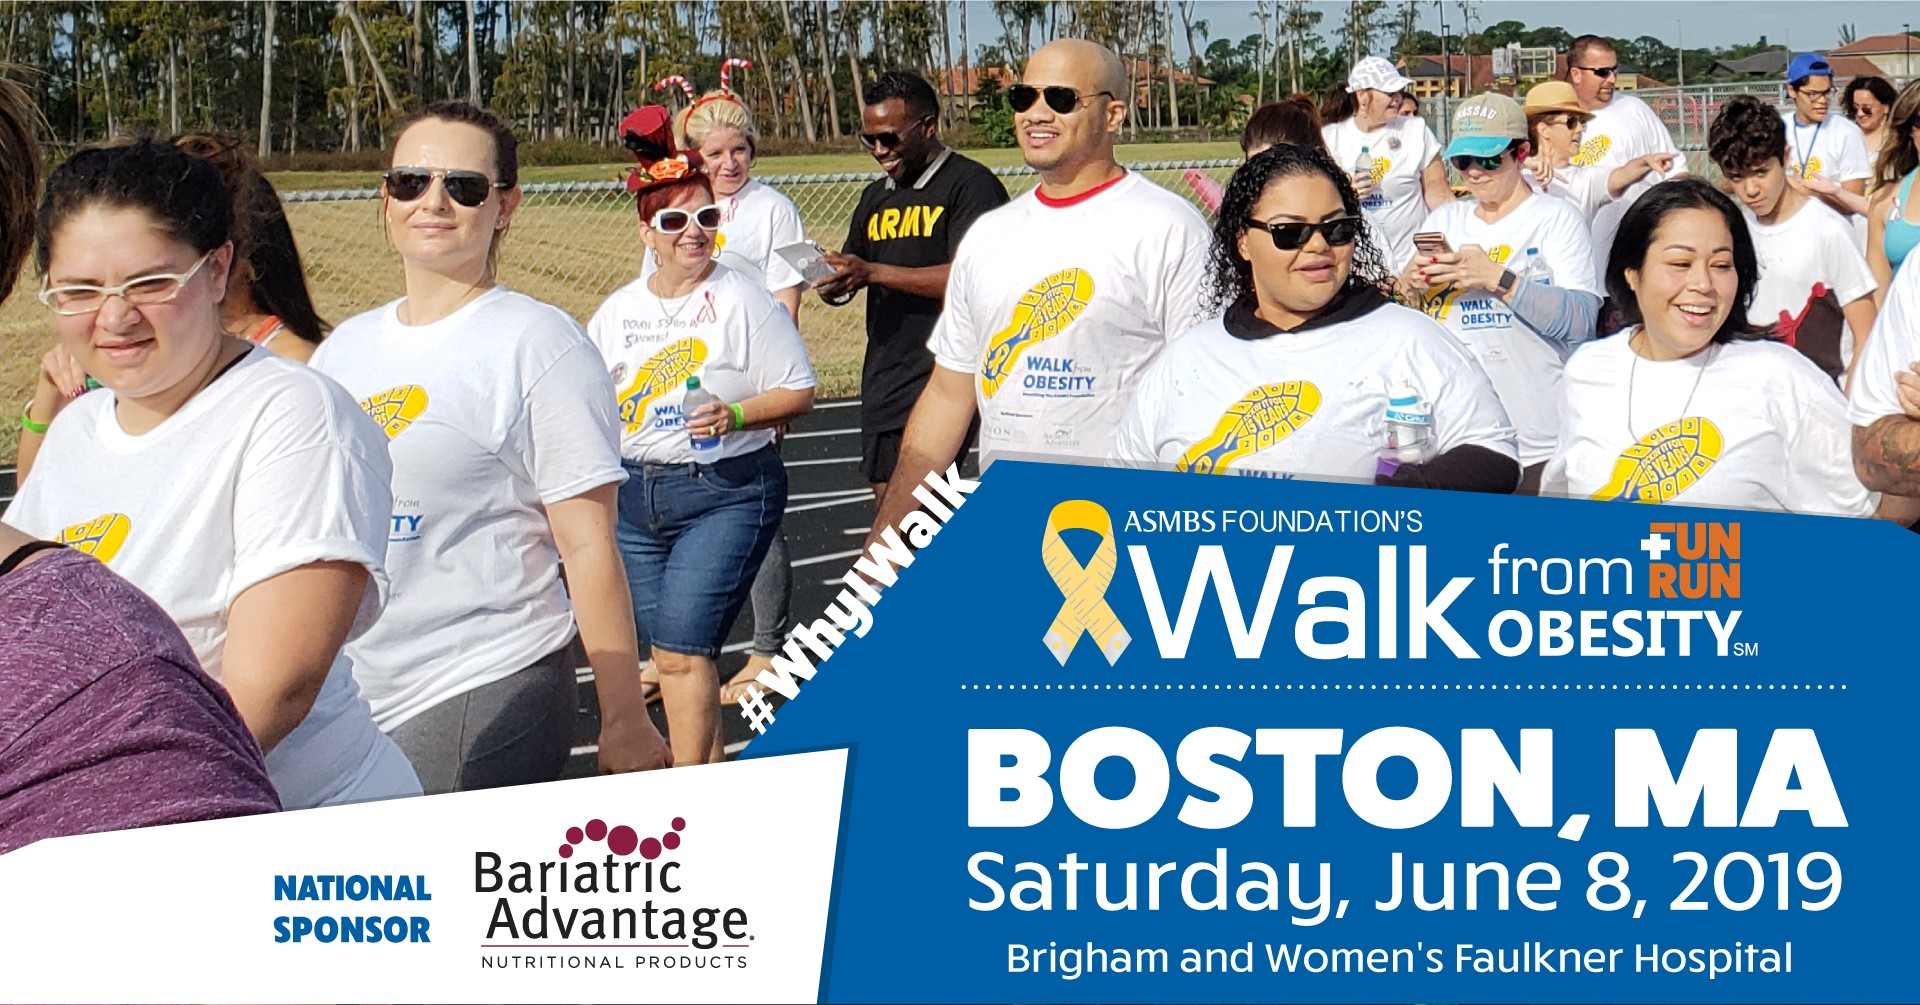 Walk from Obesity Event Page